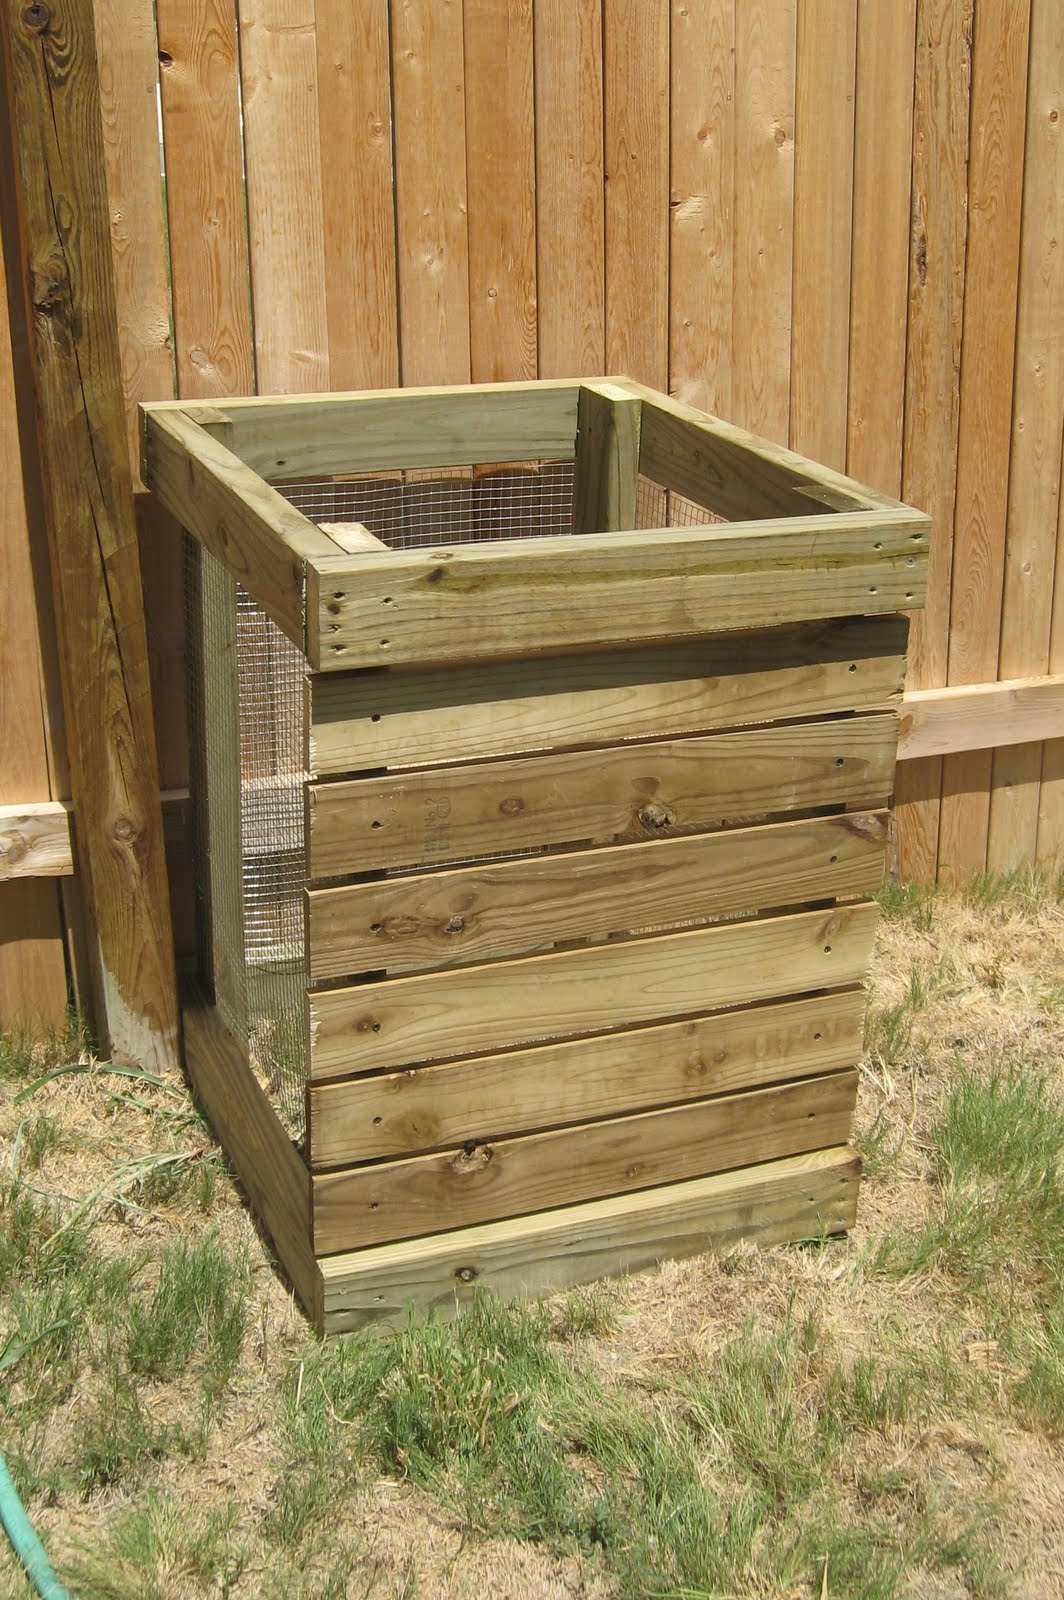 Diy Compost Bin Plans Next To Heaven Diy Compost Bin